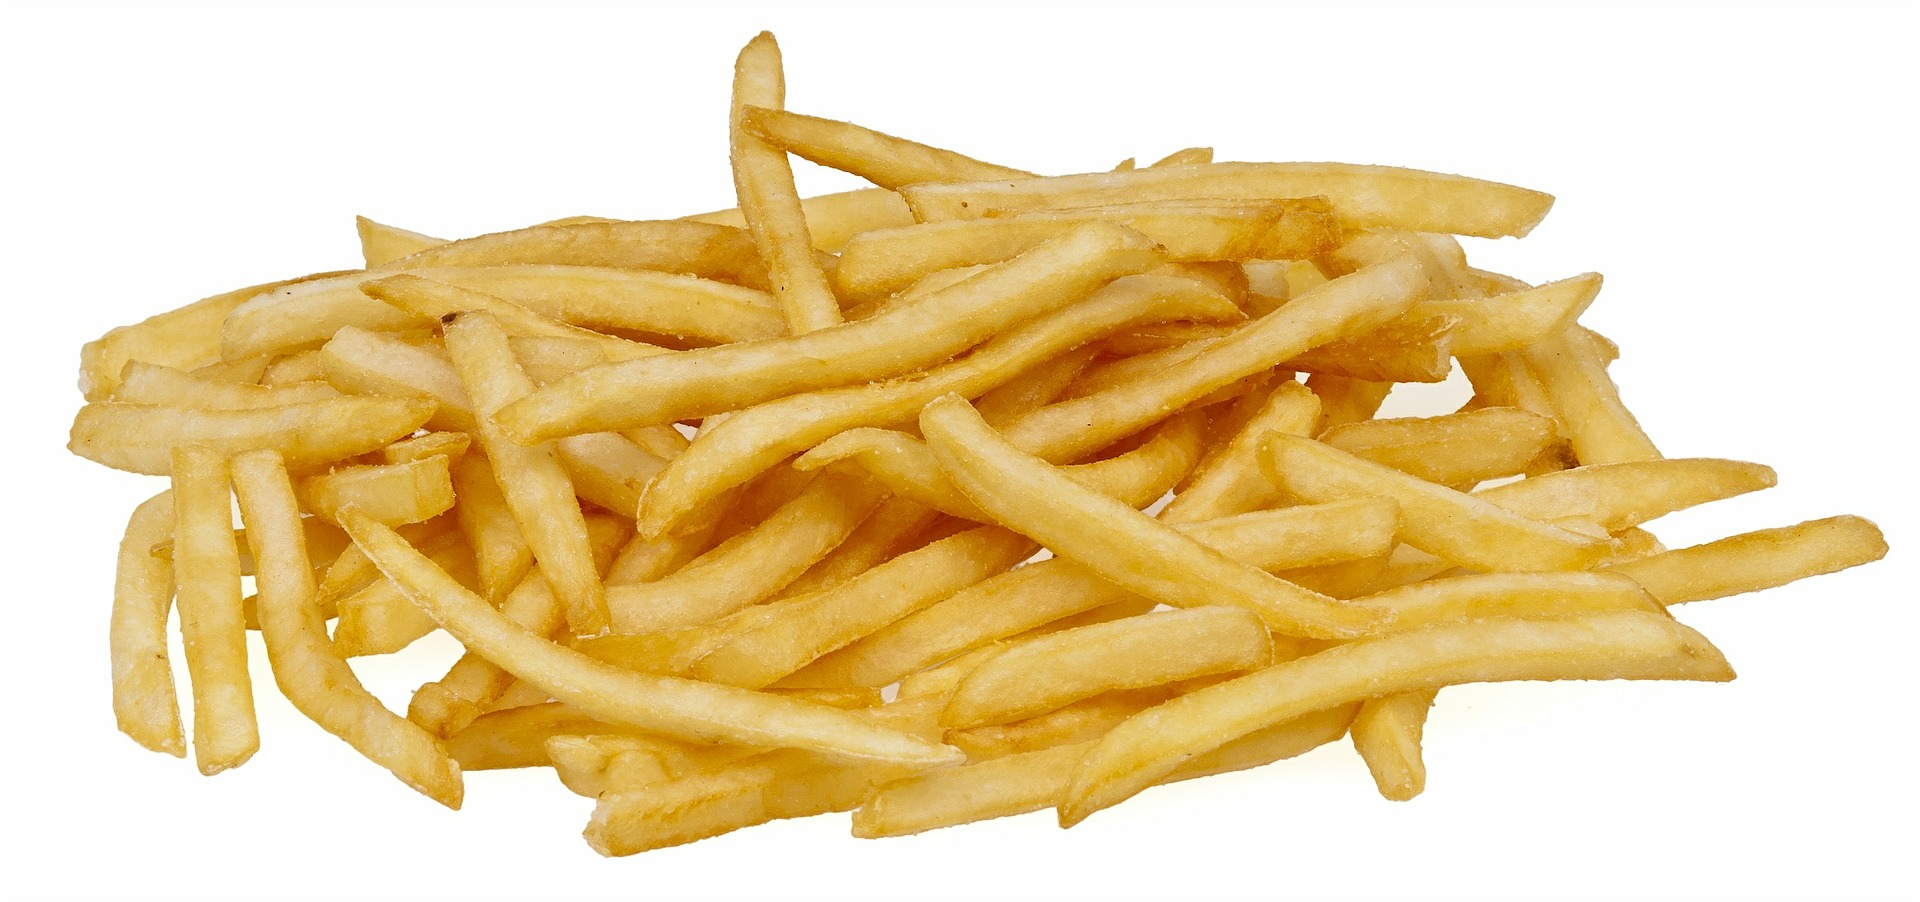 King Edmund School in Rochford said it has temporarily removed chips from the menu